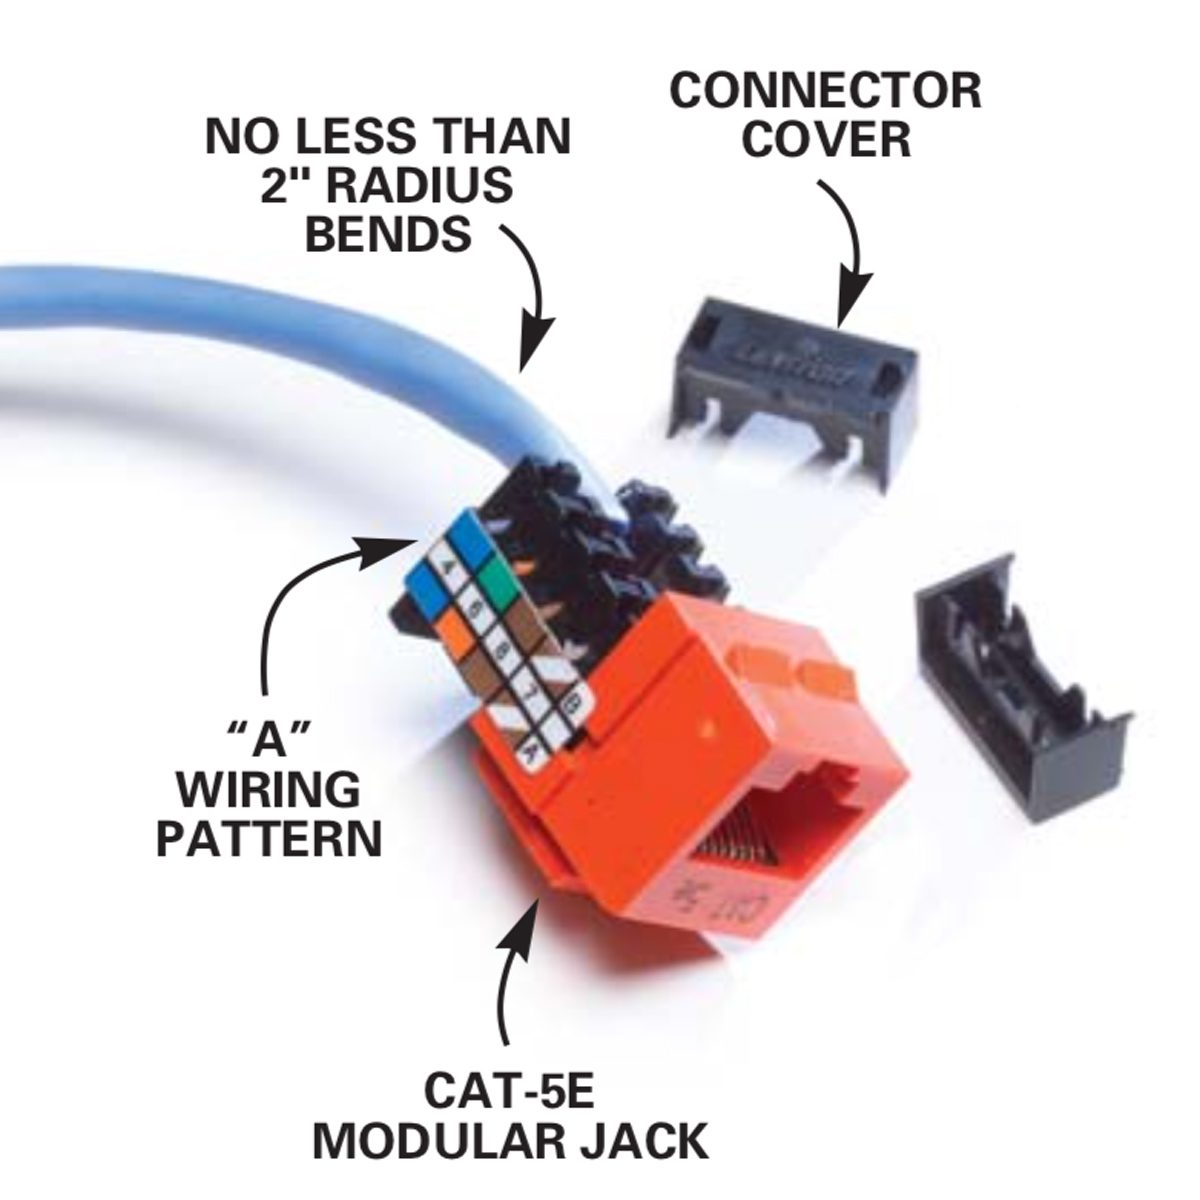 hight resolution of parts of a cat 5e modular jack you ll use the a color coded wiring pattern